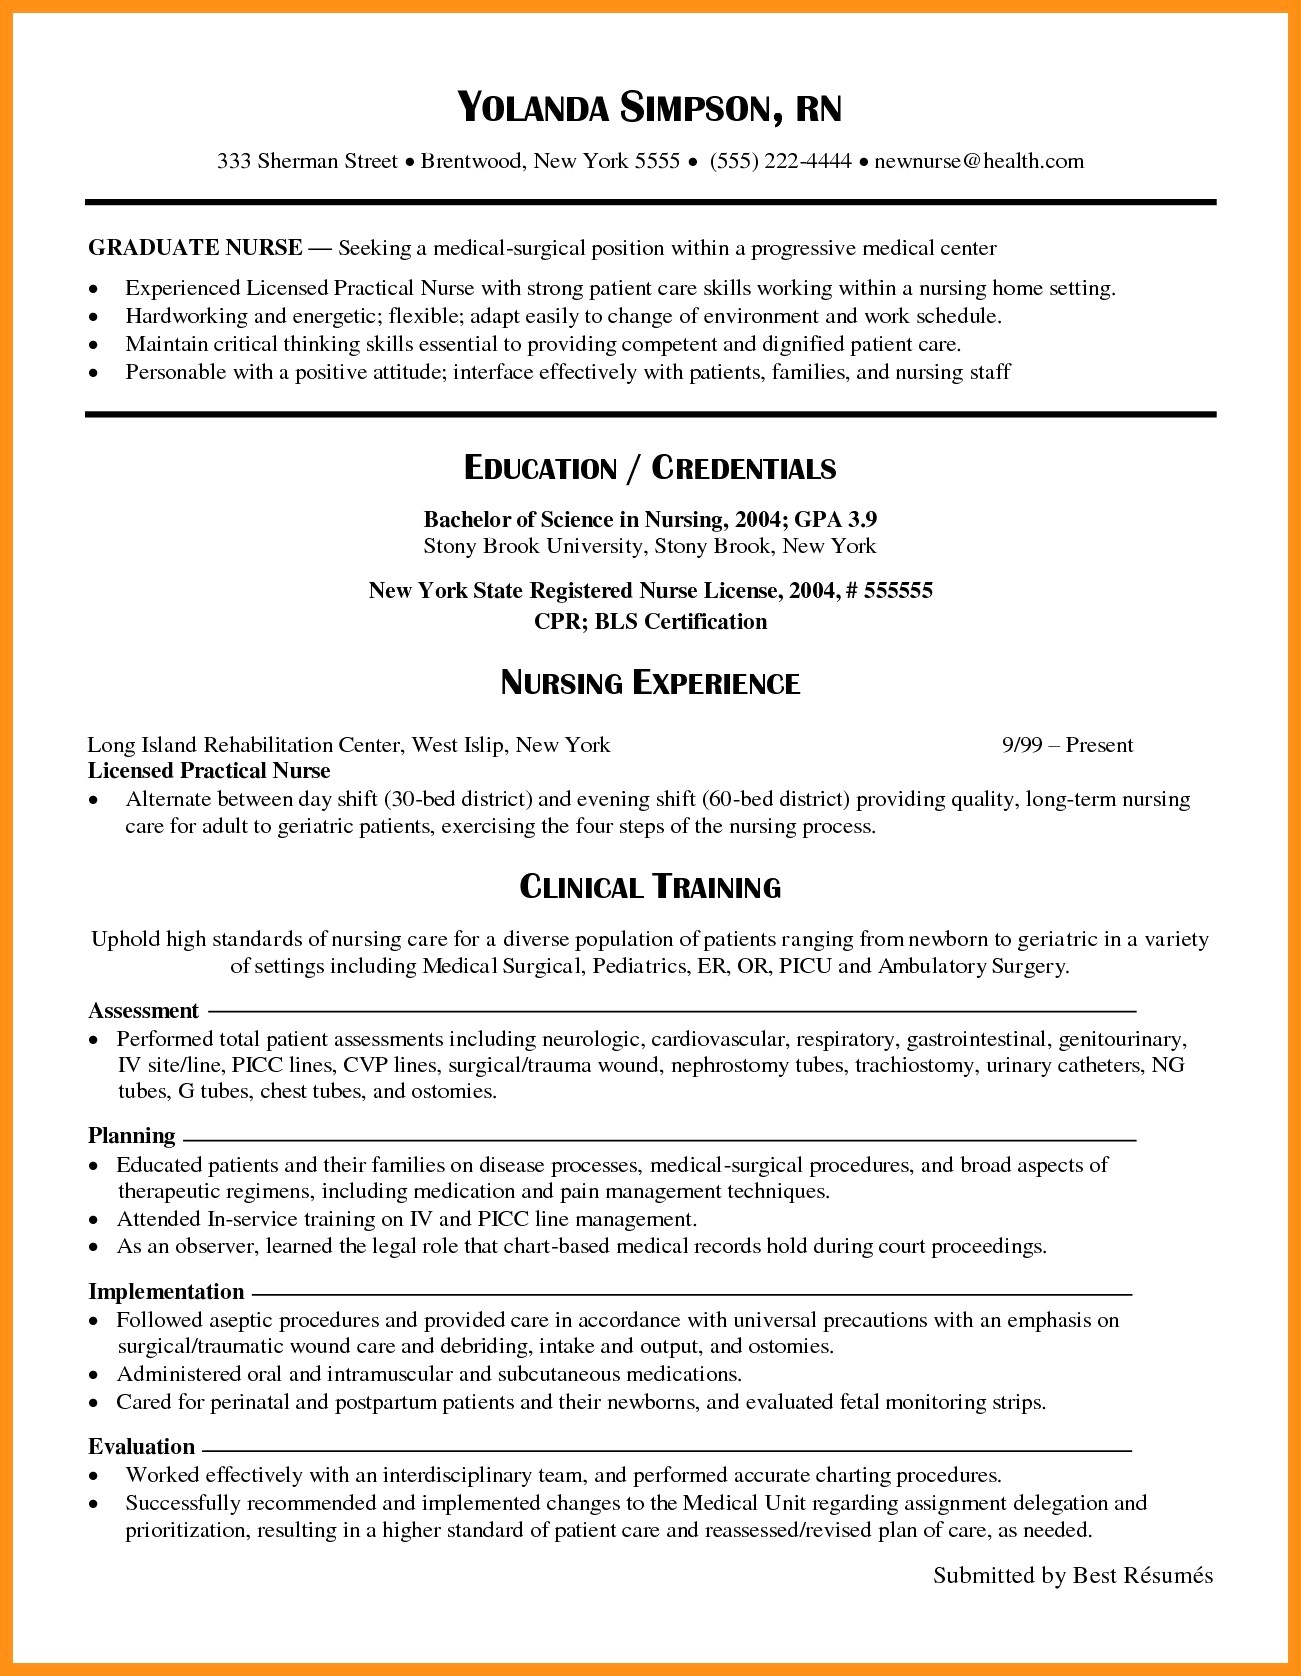 New Grad Nurse Resume Rn Resume Examples 2017 Elegant Nursing Samples New Grad Graduate Of Nurse new grad nurse resume|wikiresume.com